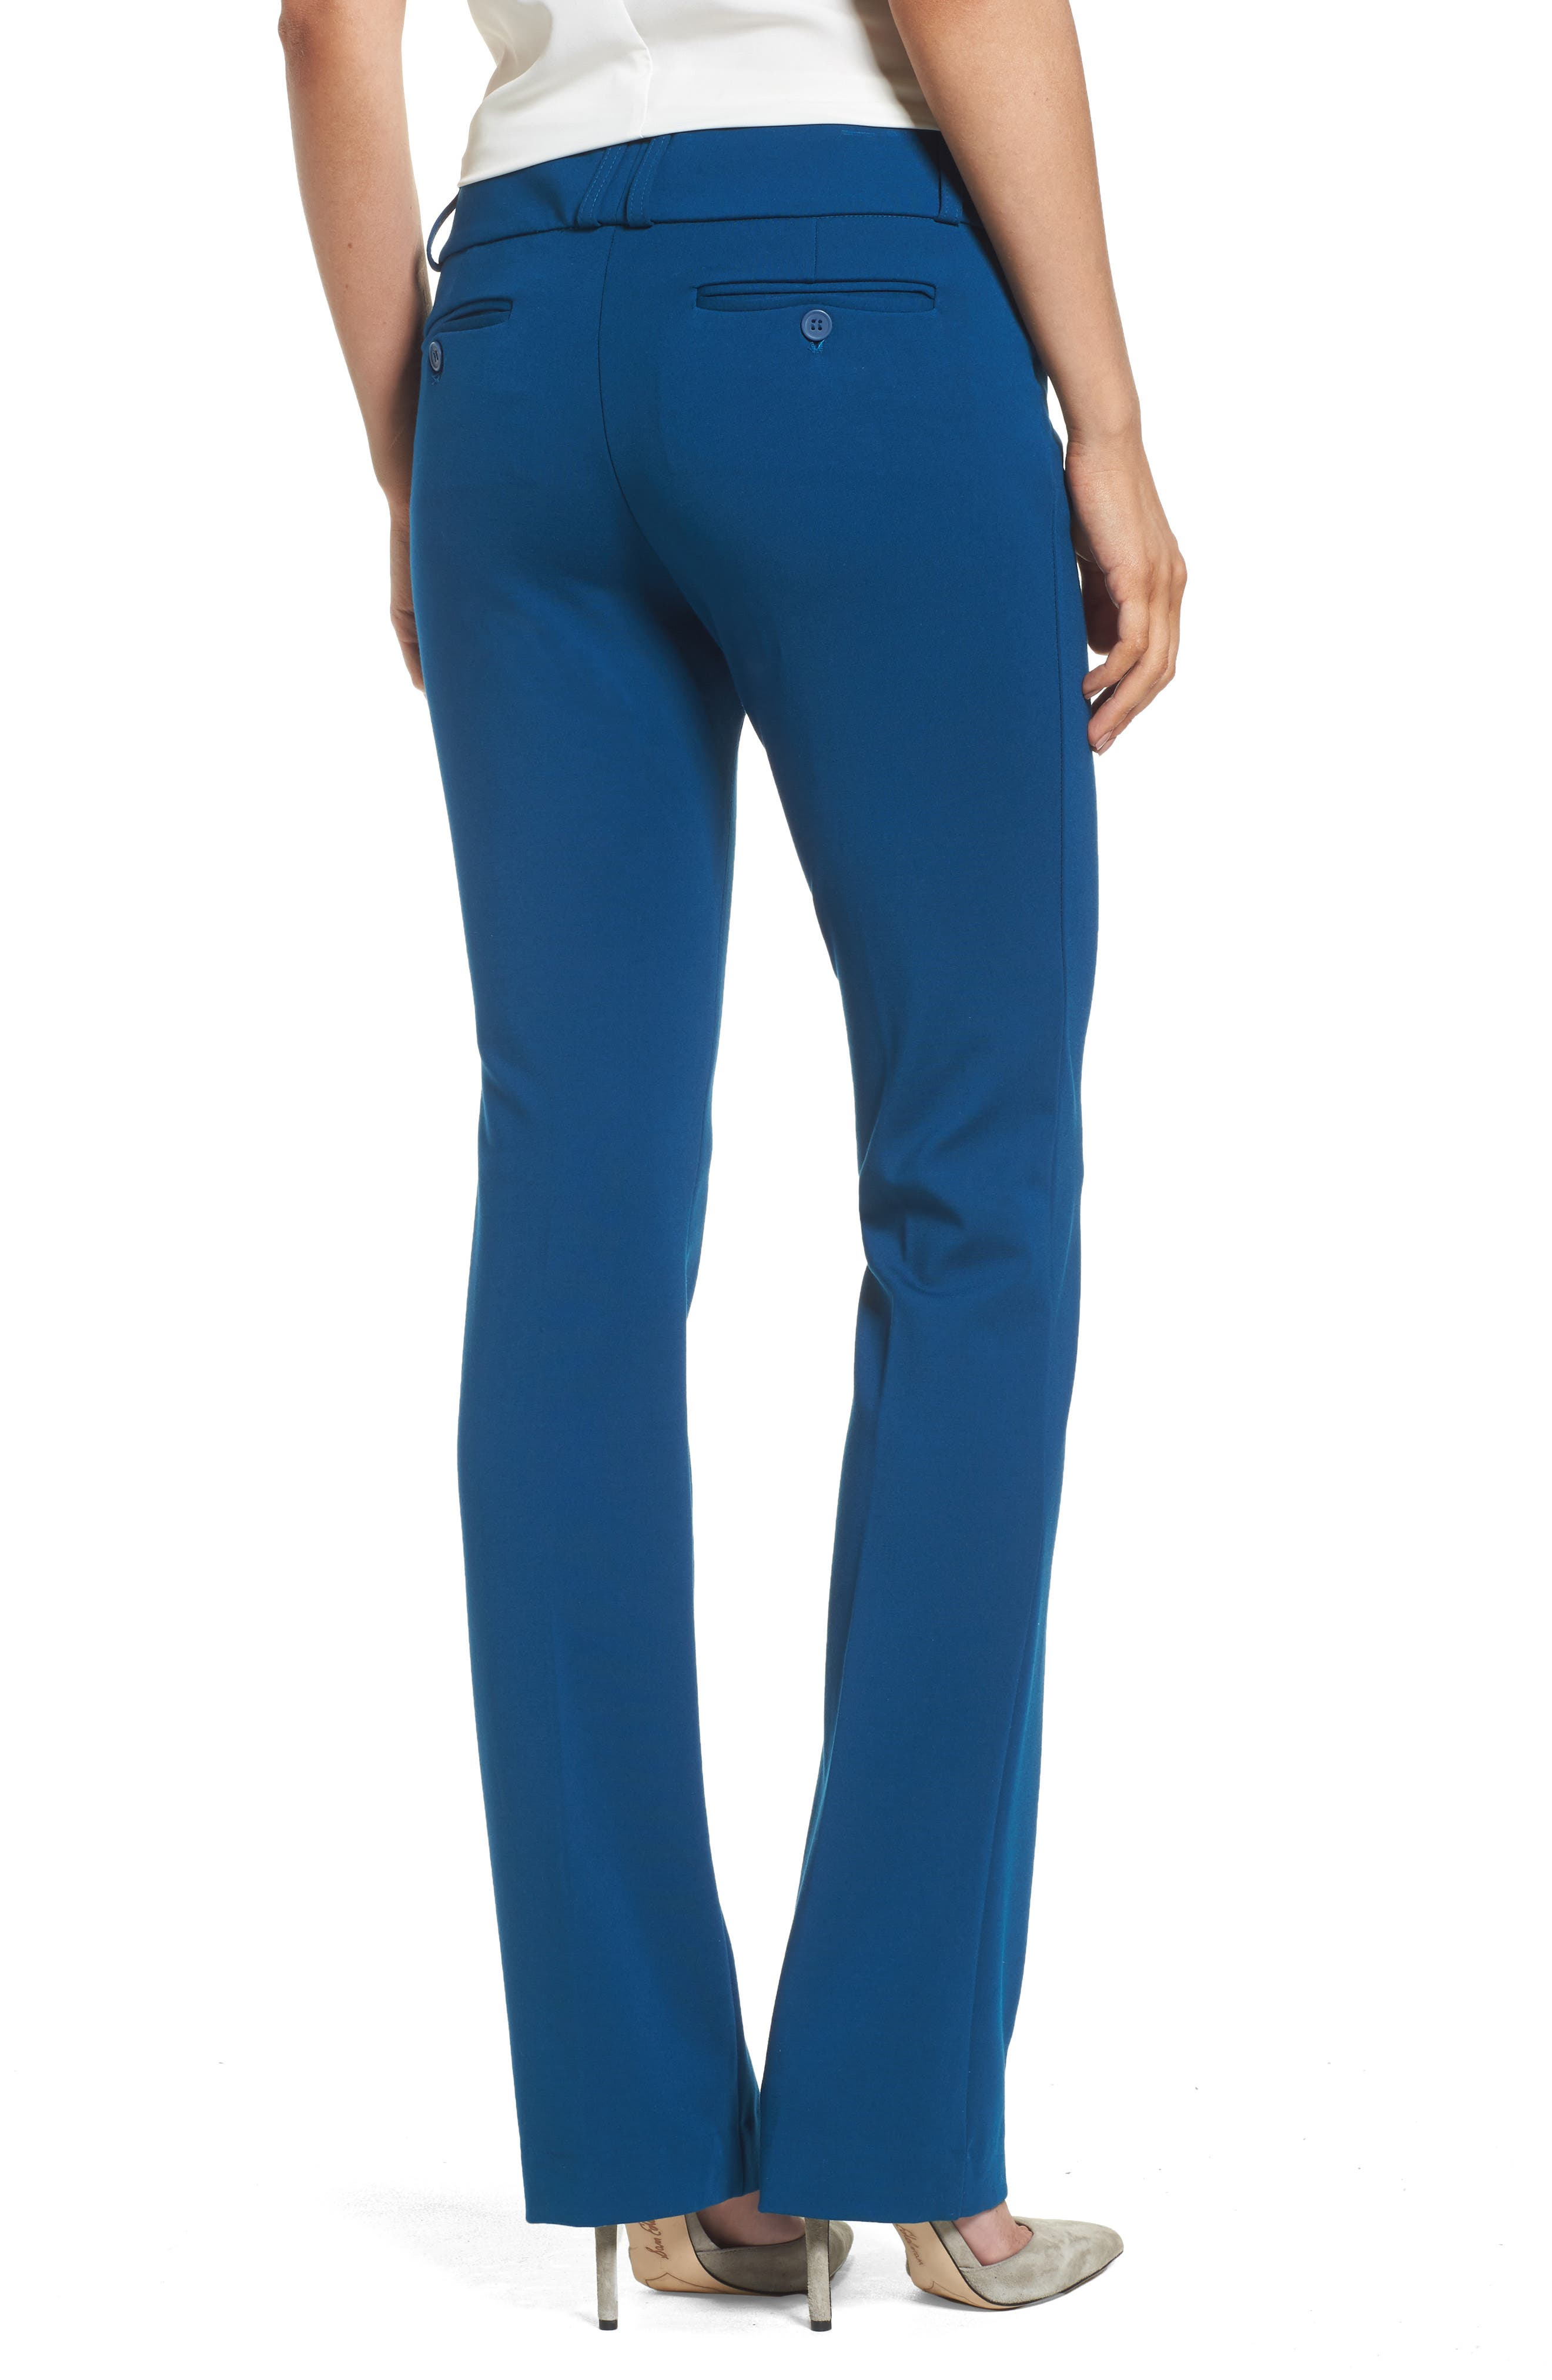 Jane Brown Trousers,                             Alternate thumbnail 2, color,                             NEW NAVY